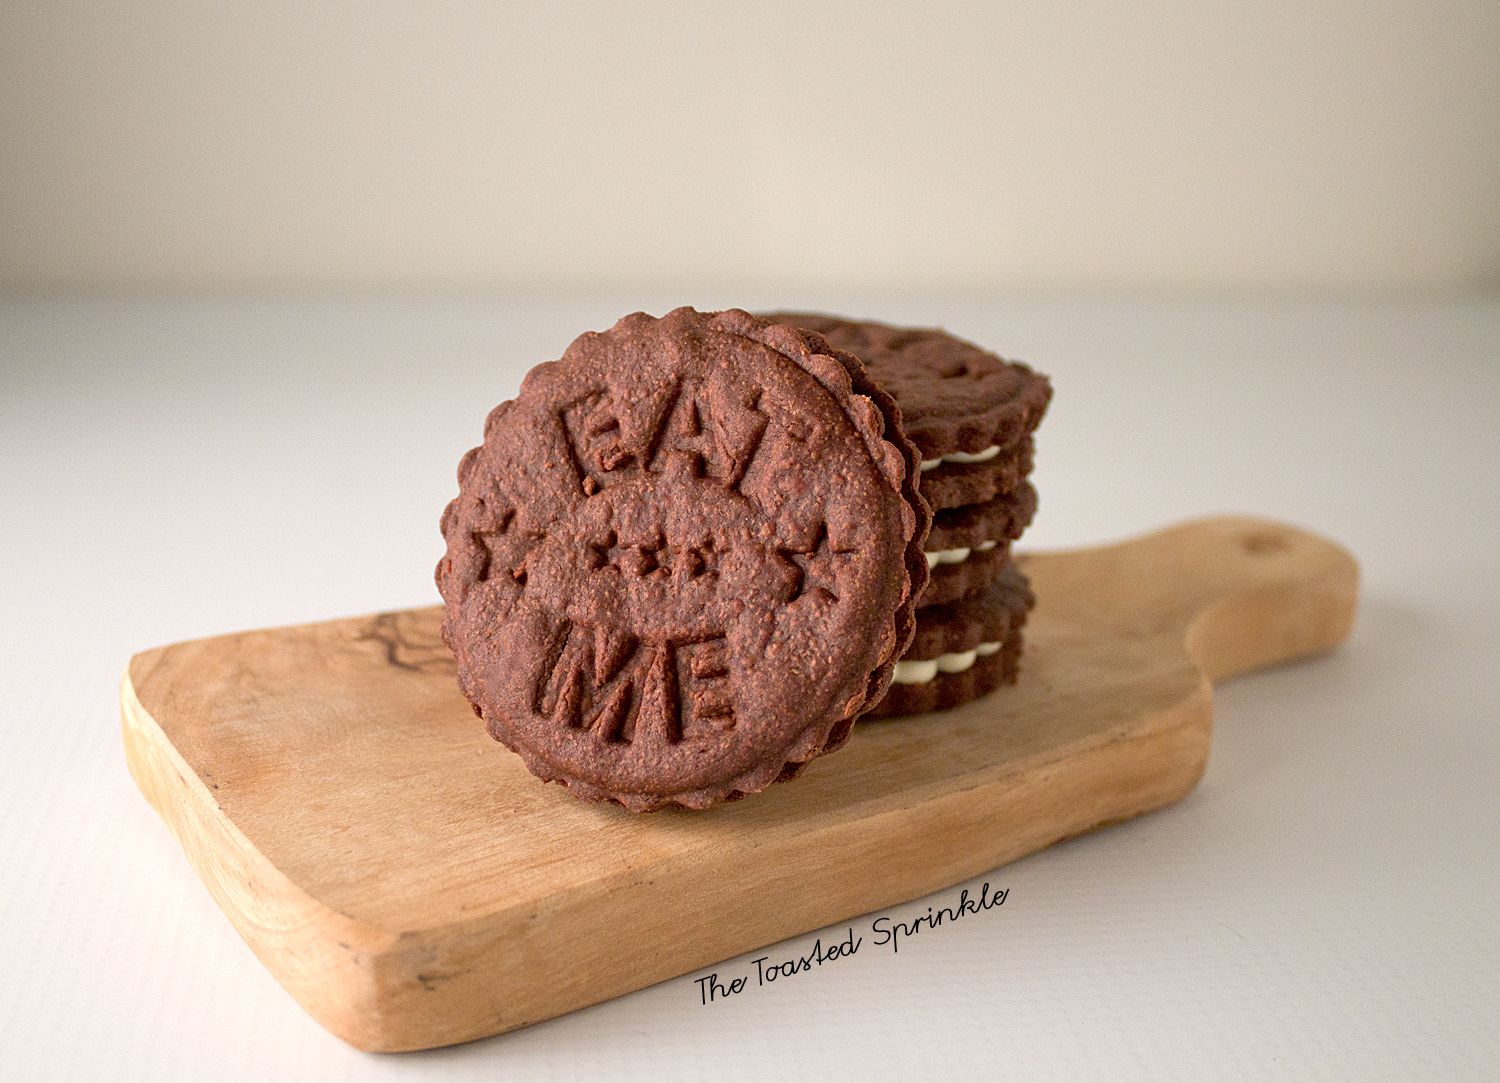 Fauxreos (aka chocolate wafer cookies with white chocolate filling)